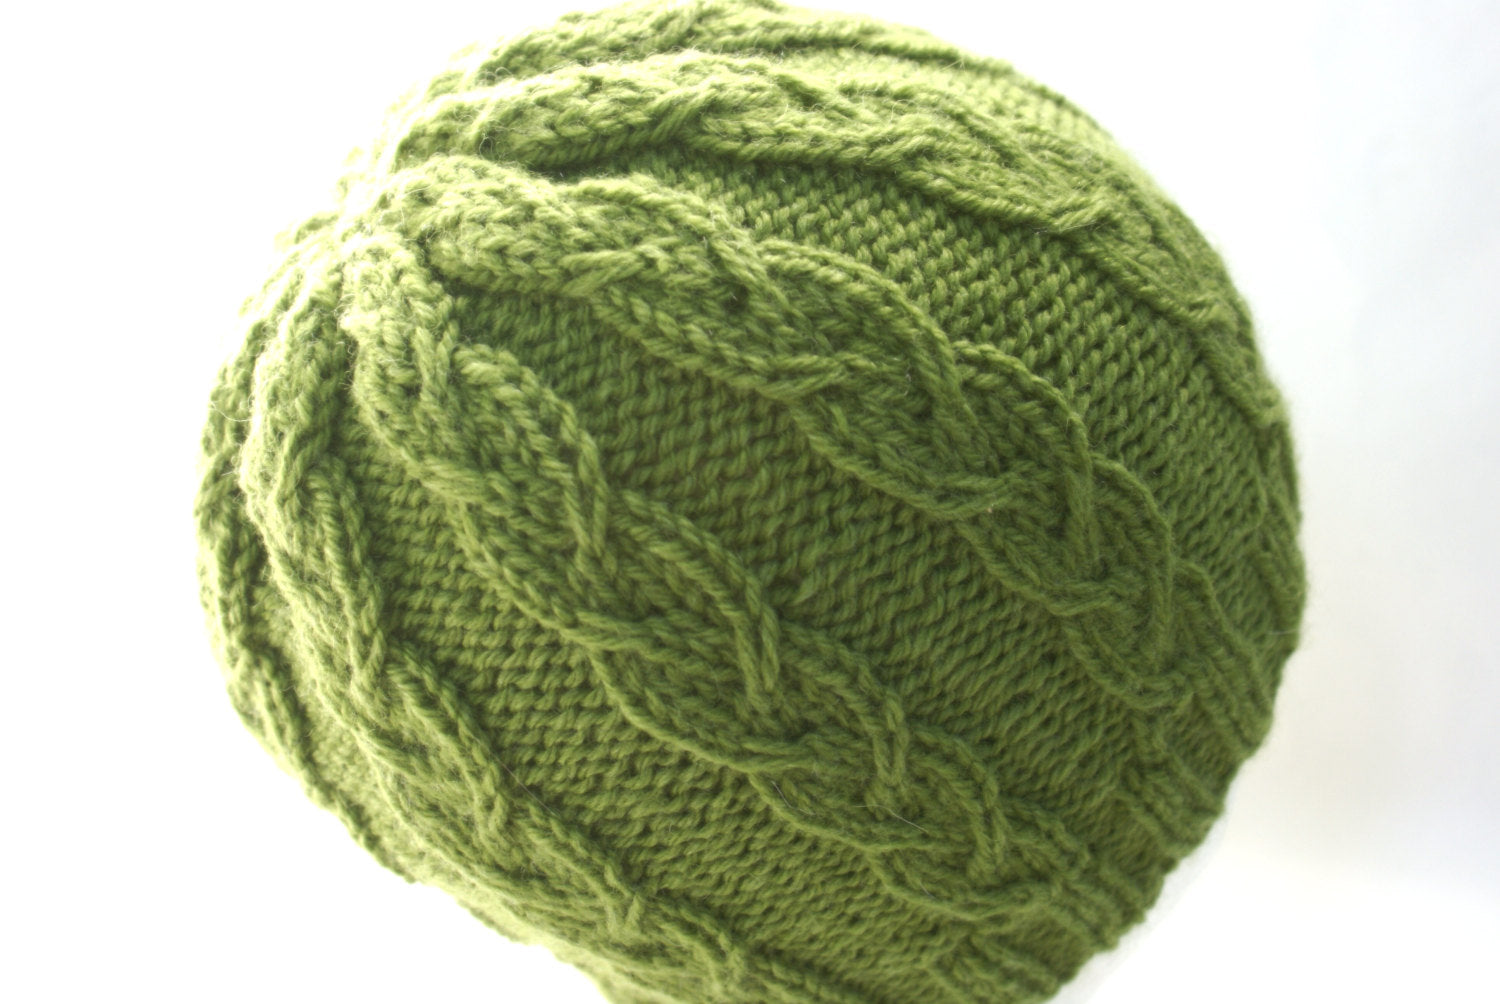 6d21016008e ... green cable knit hat pattern shown on the head of a mannequin ...